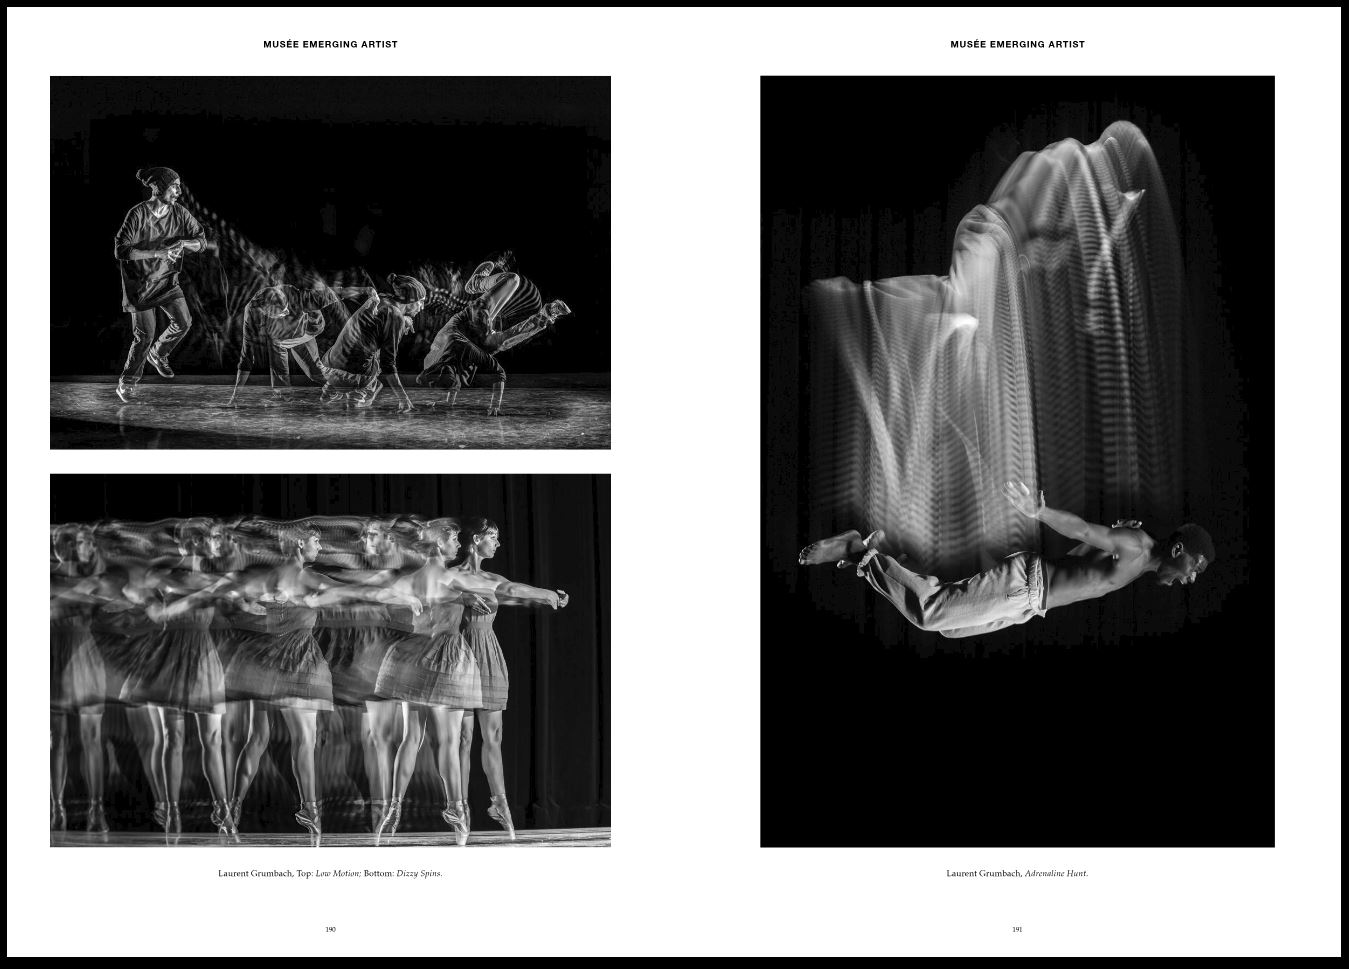 Publication in Musée Magazine #20 on Motion. Motion Sculpture pictures